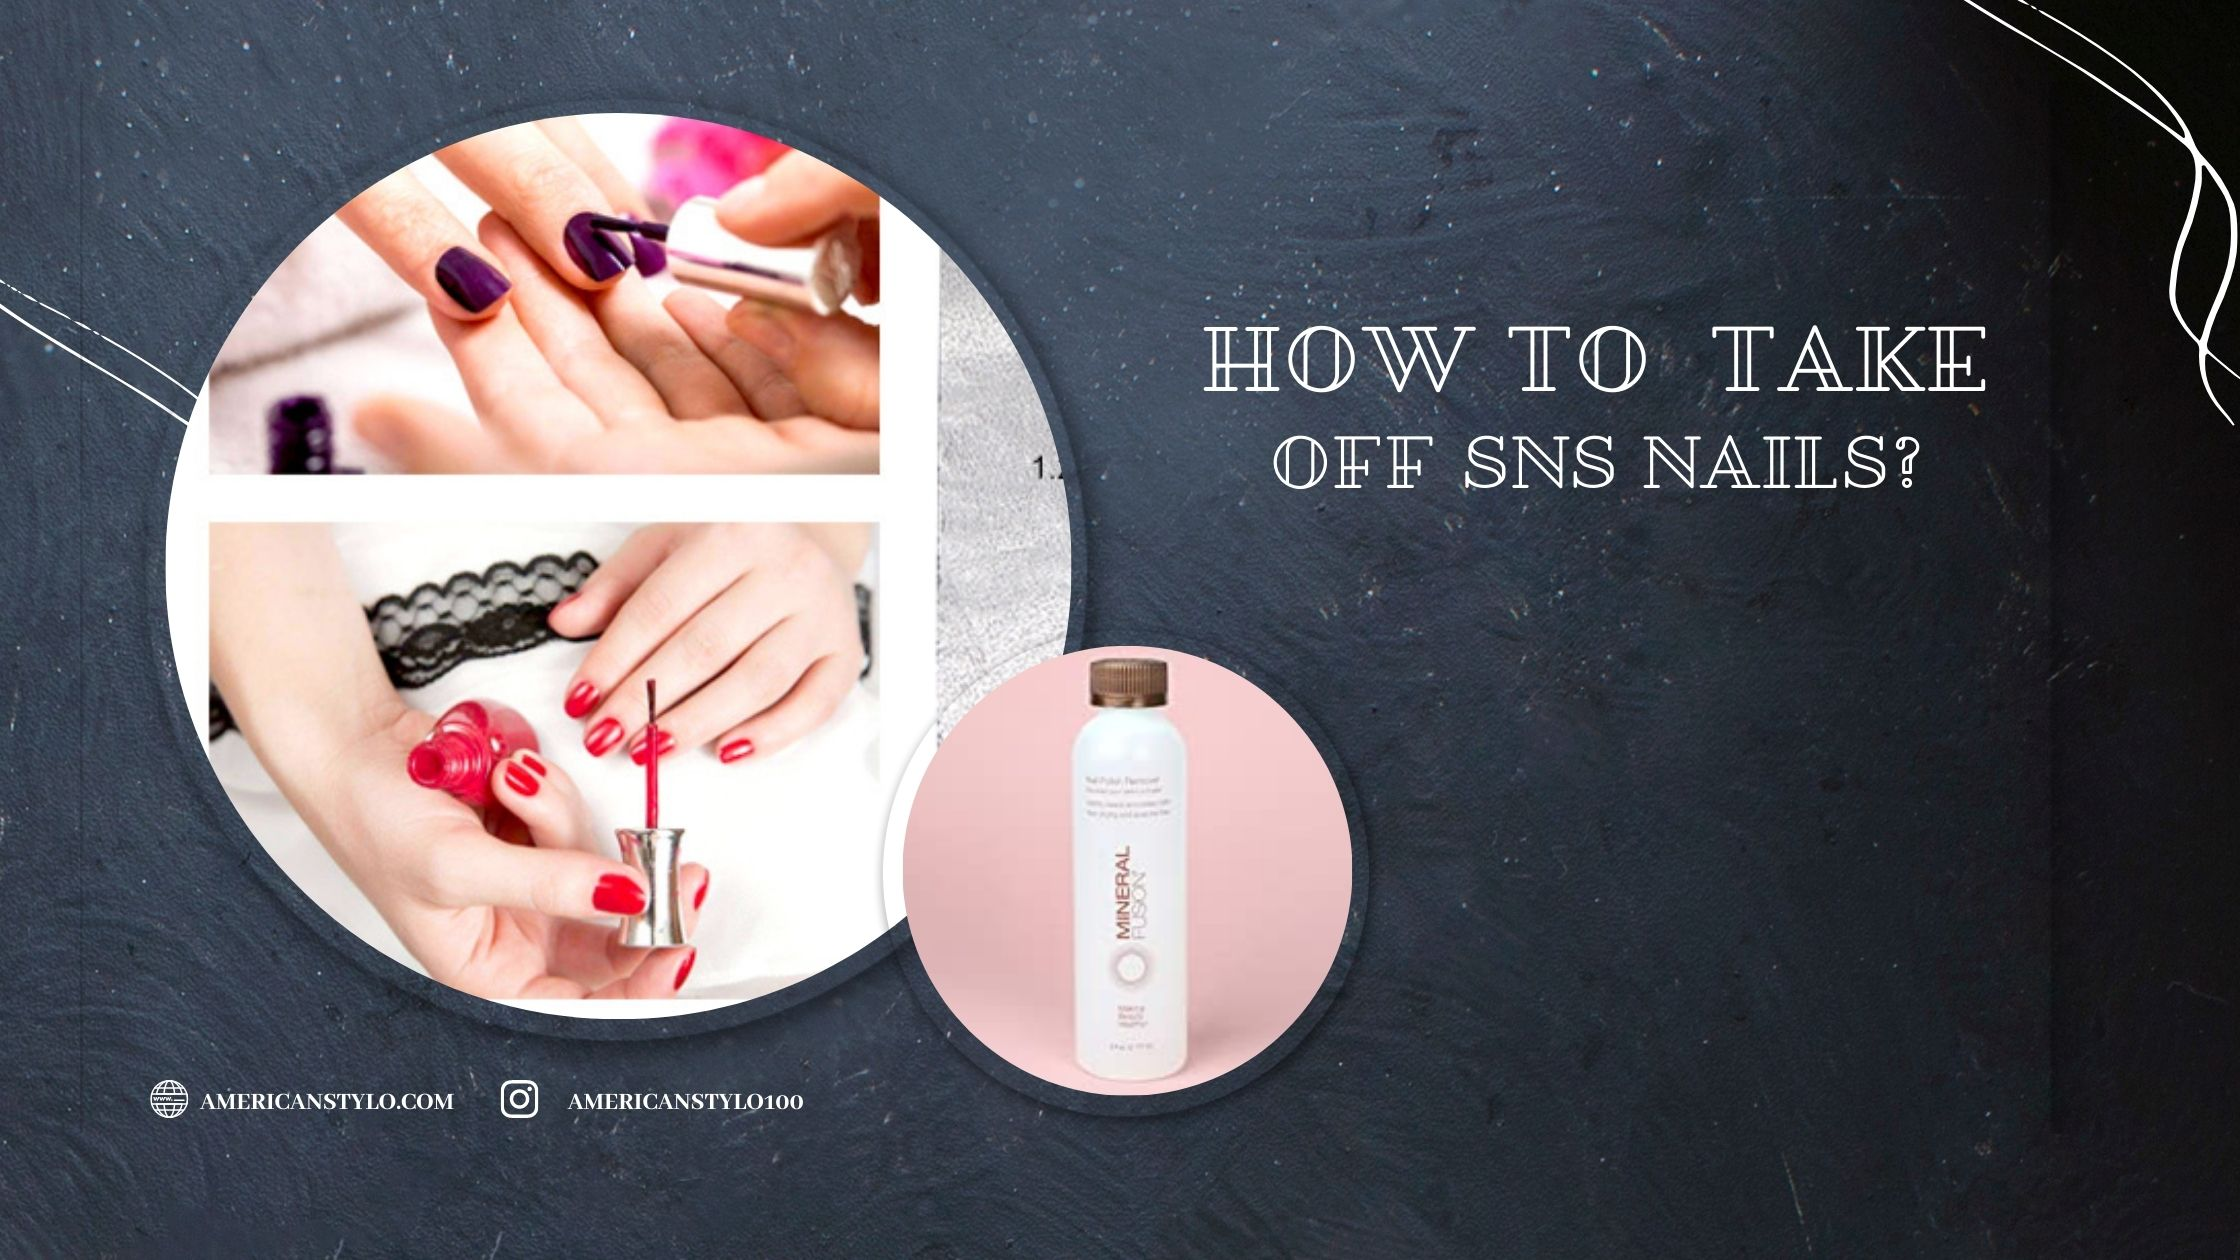 How To Take Off SNS Nails?